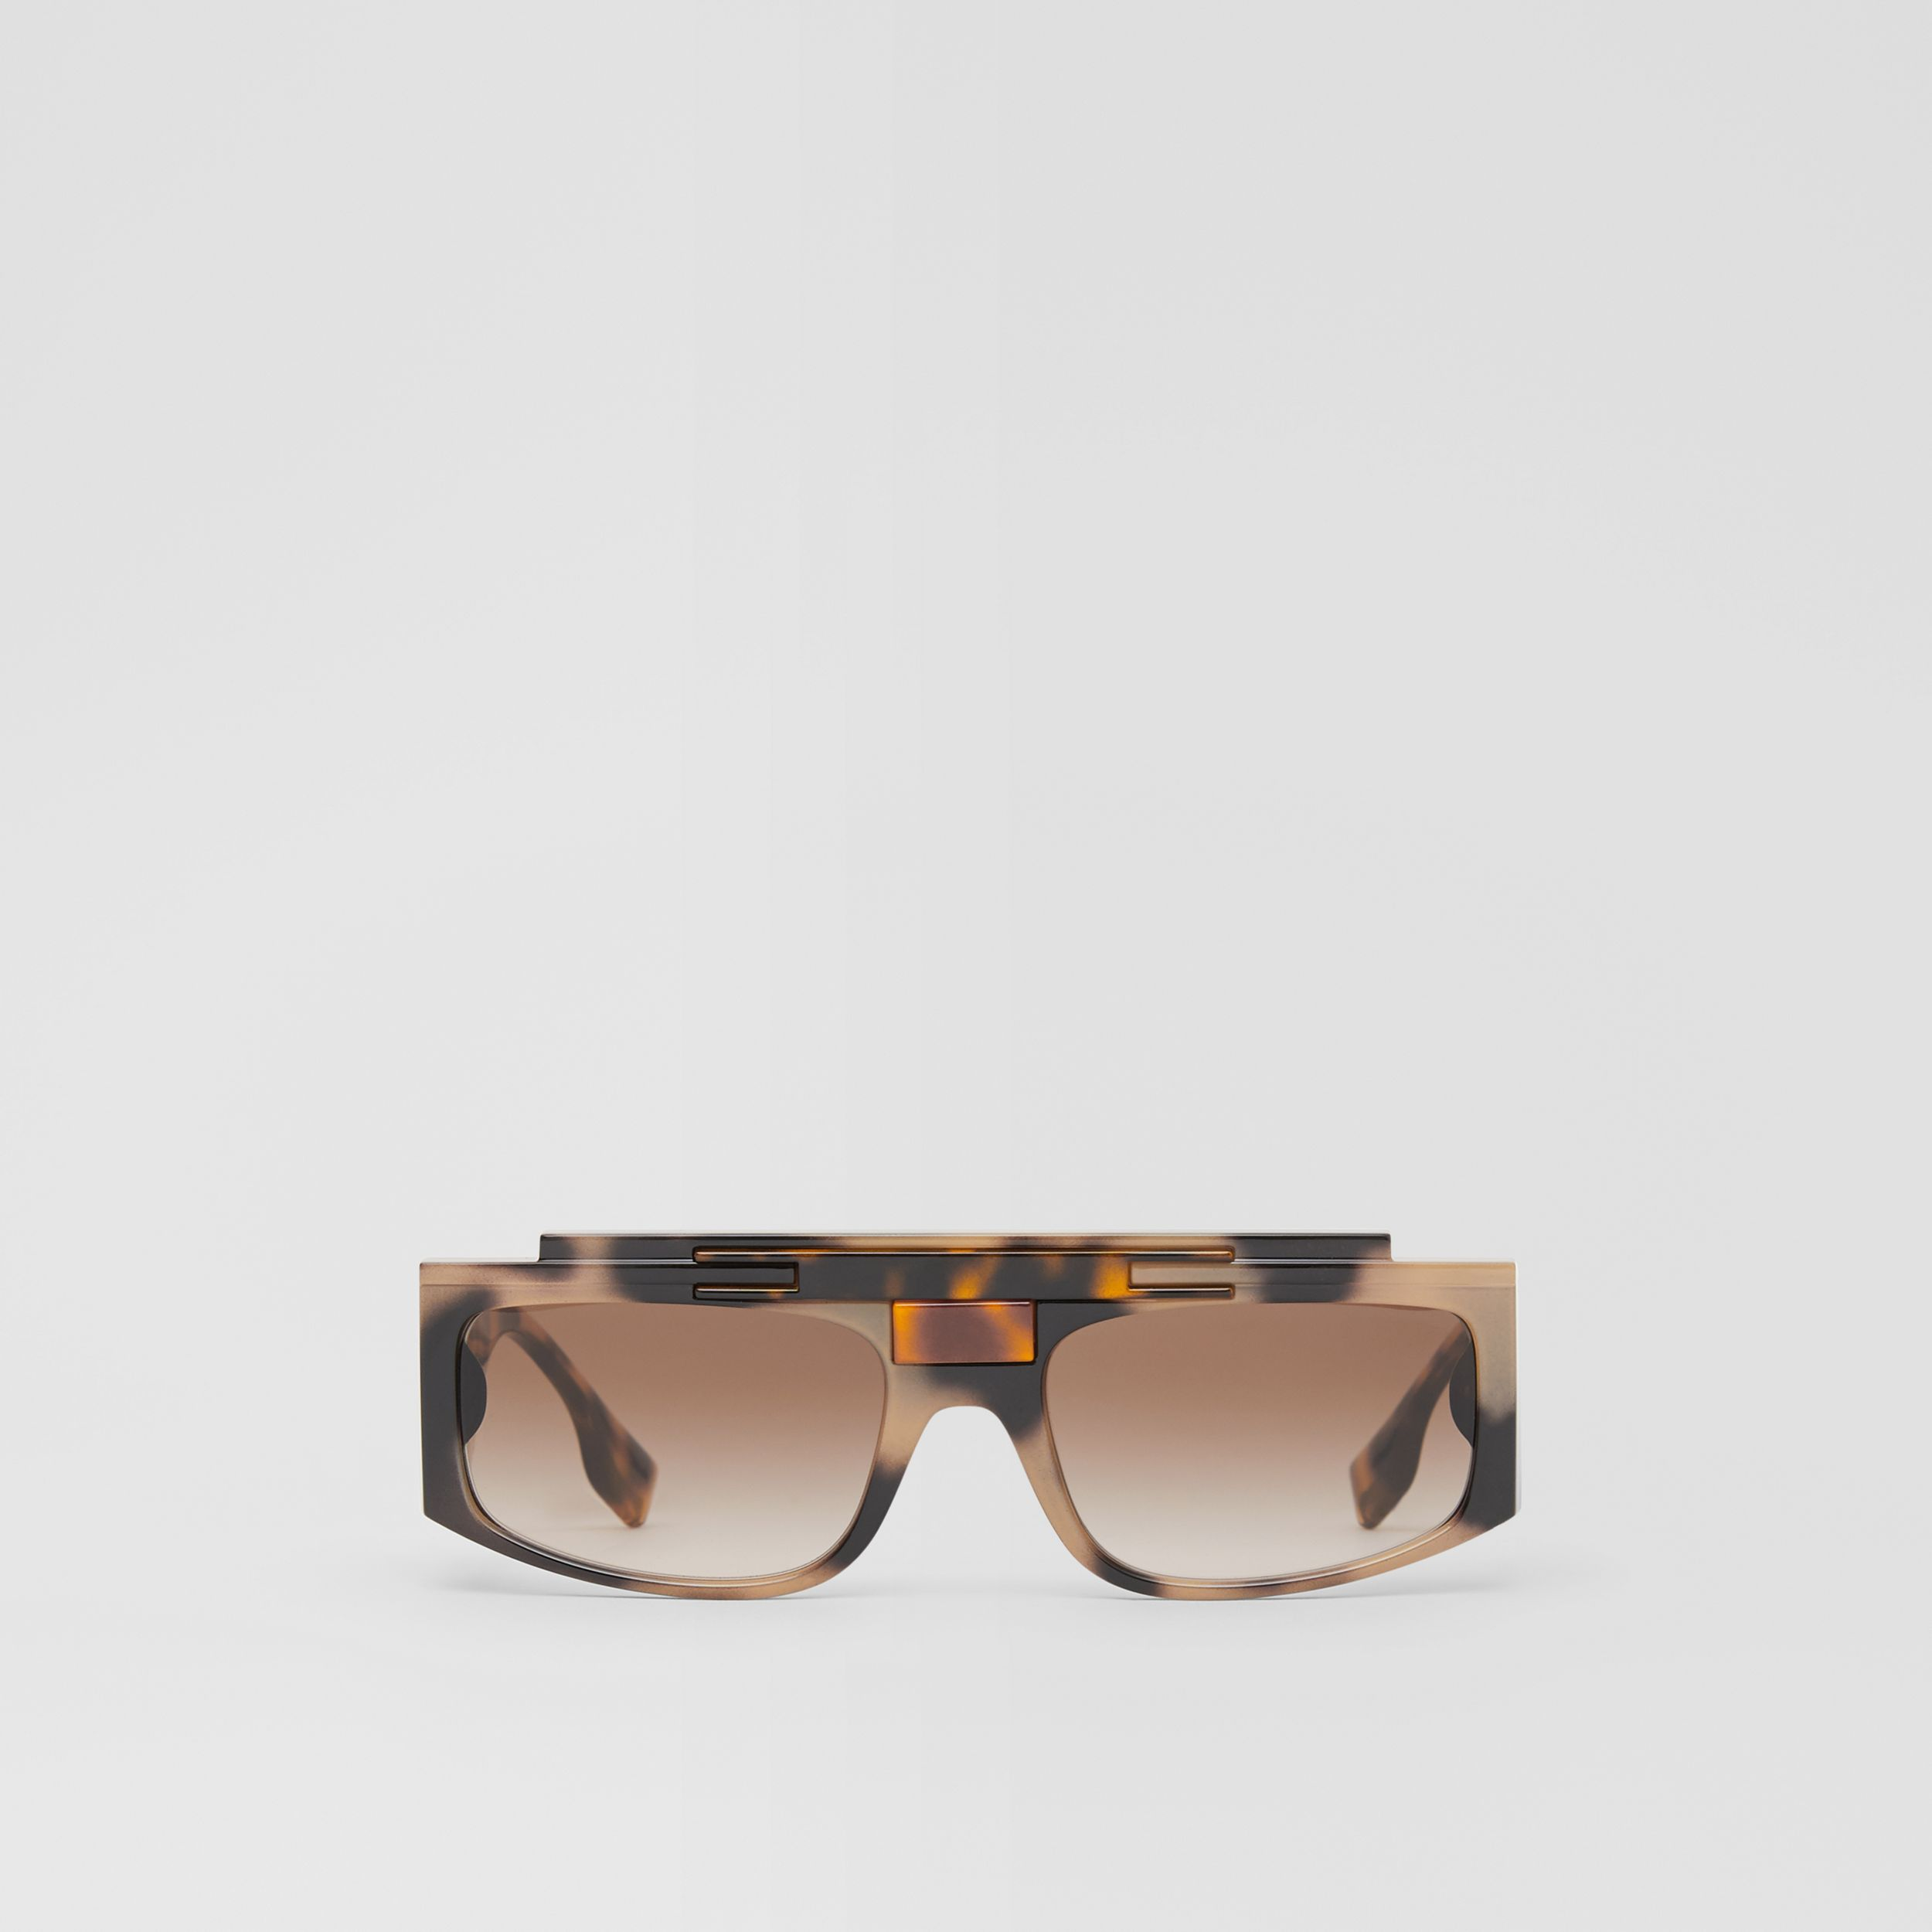 Rectangular Frame Sunglasses in Tortoiseshell - Women | Burberry United States - 1